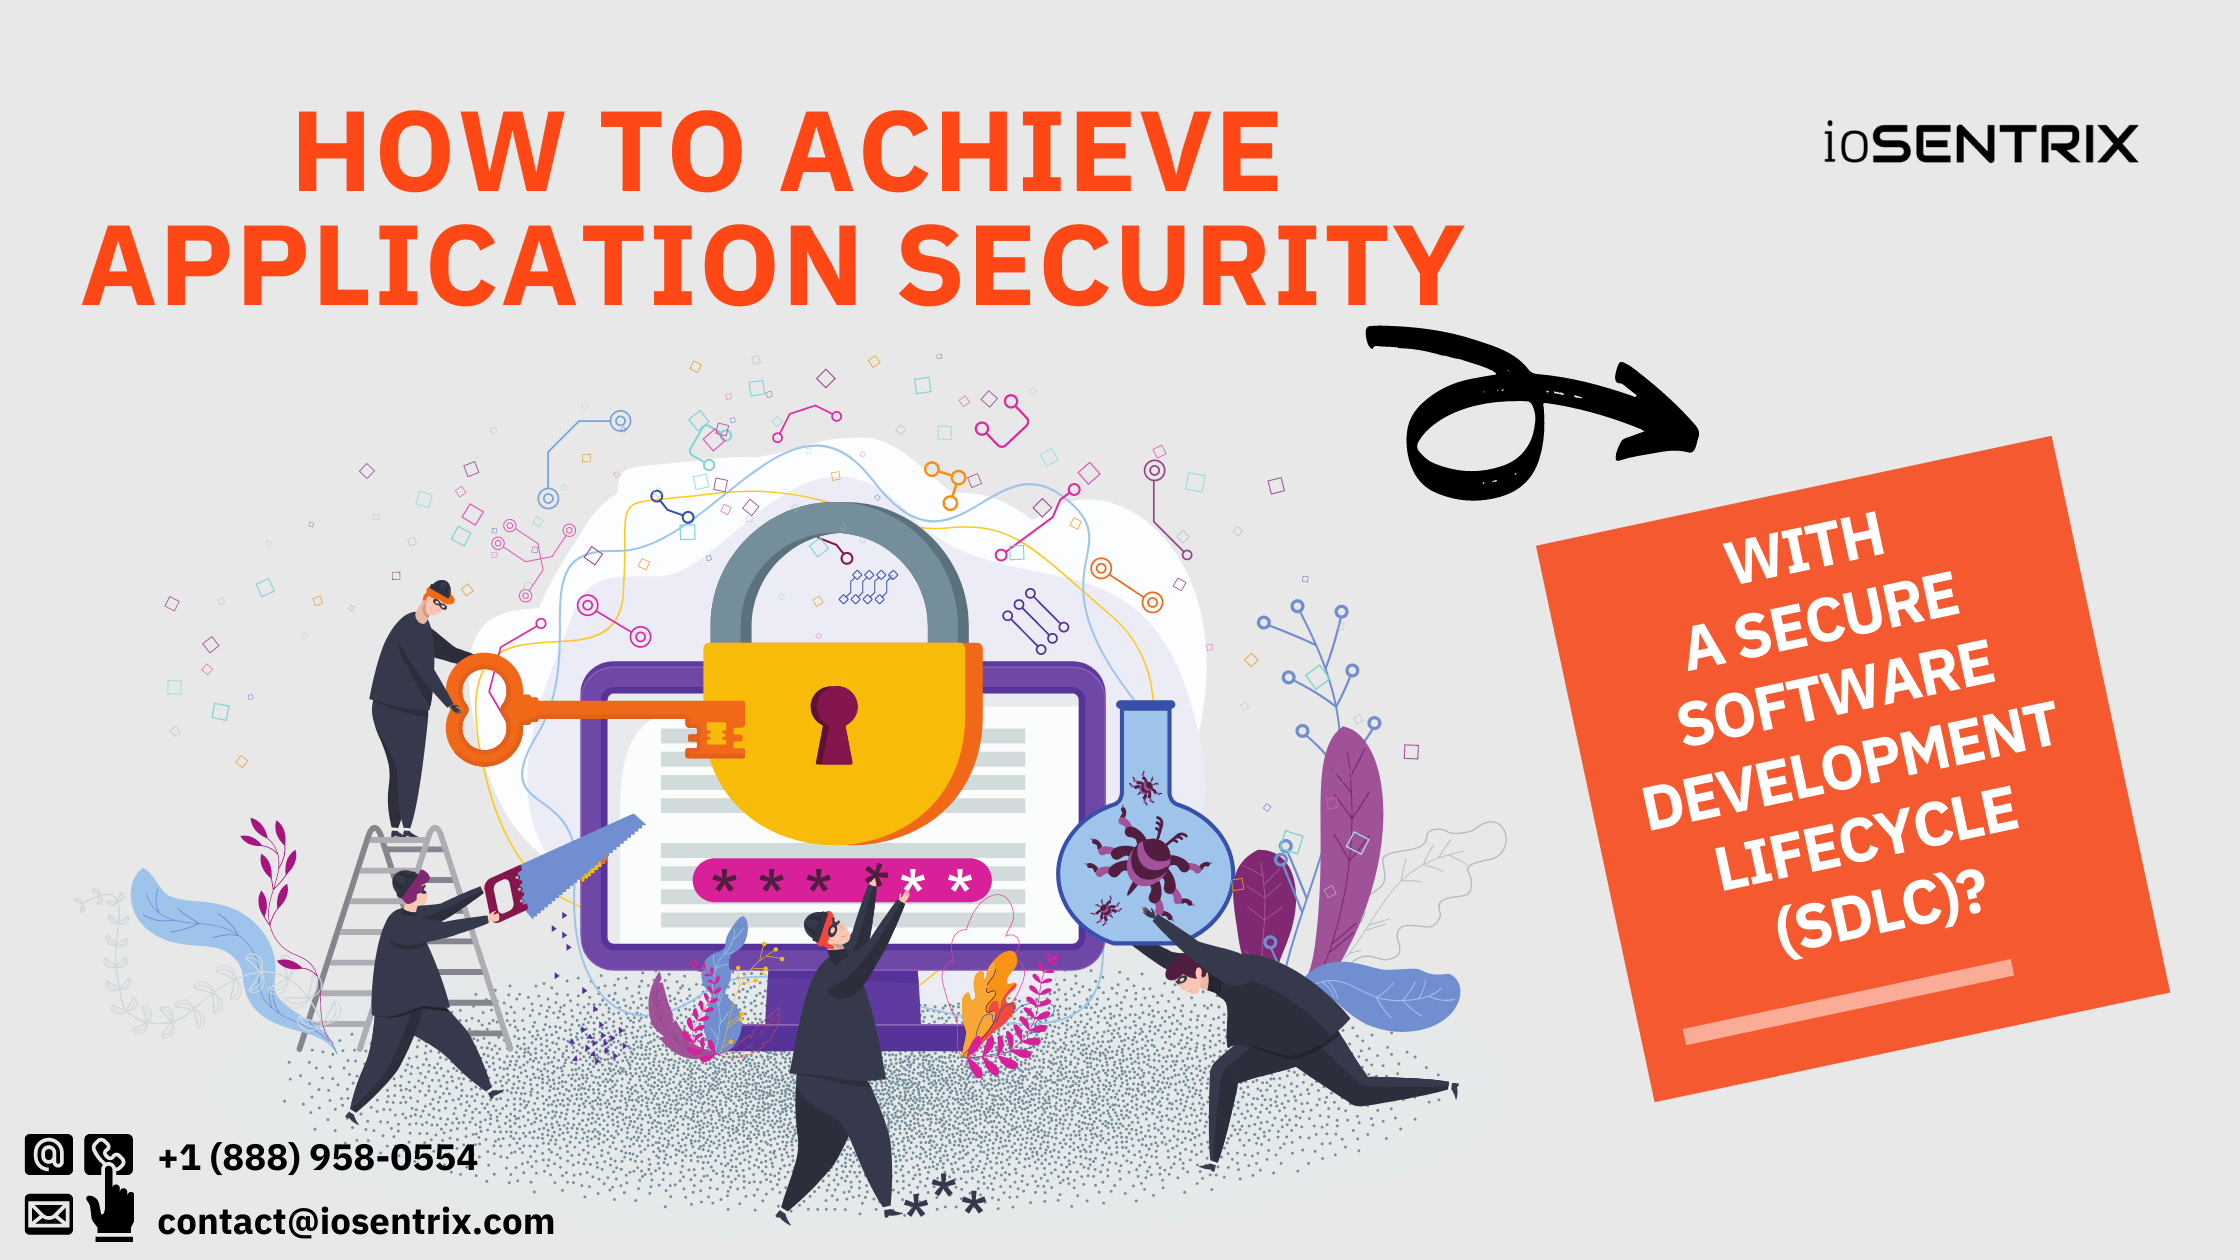 How to achieve application security with a secure software development lifecycle (SDLC)?